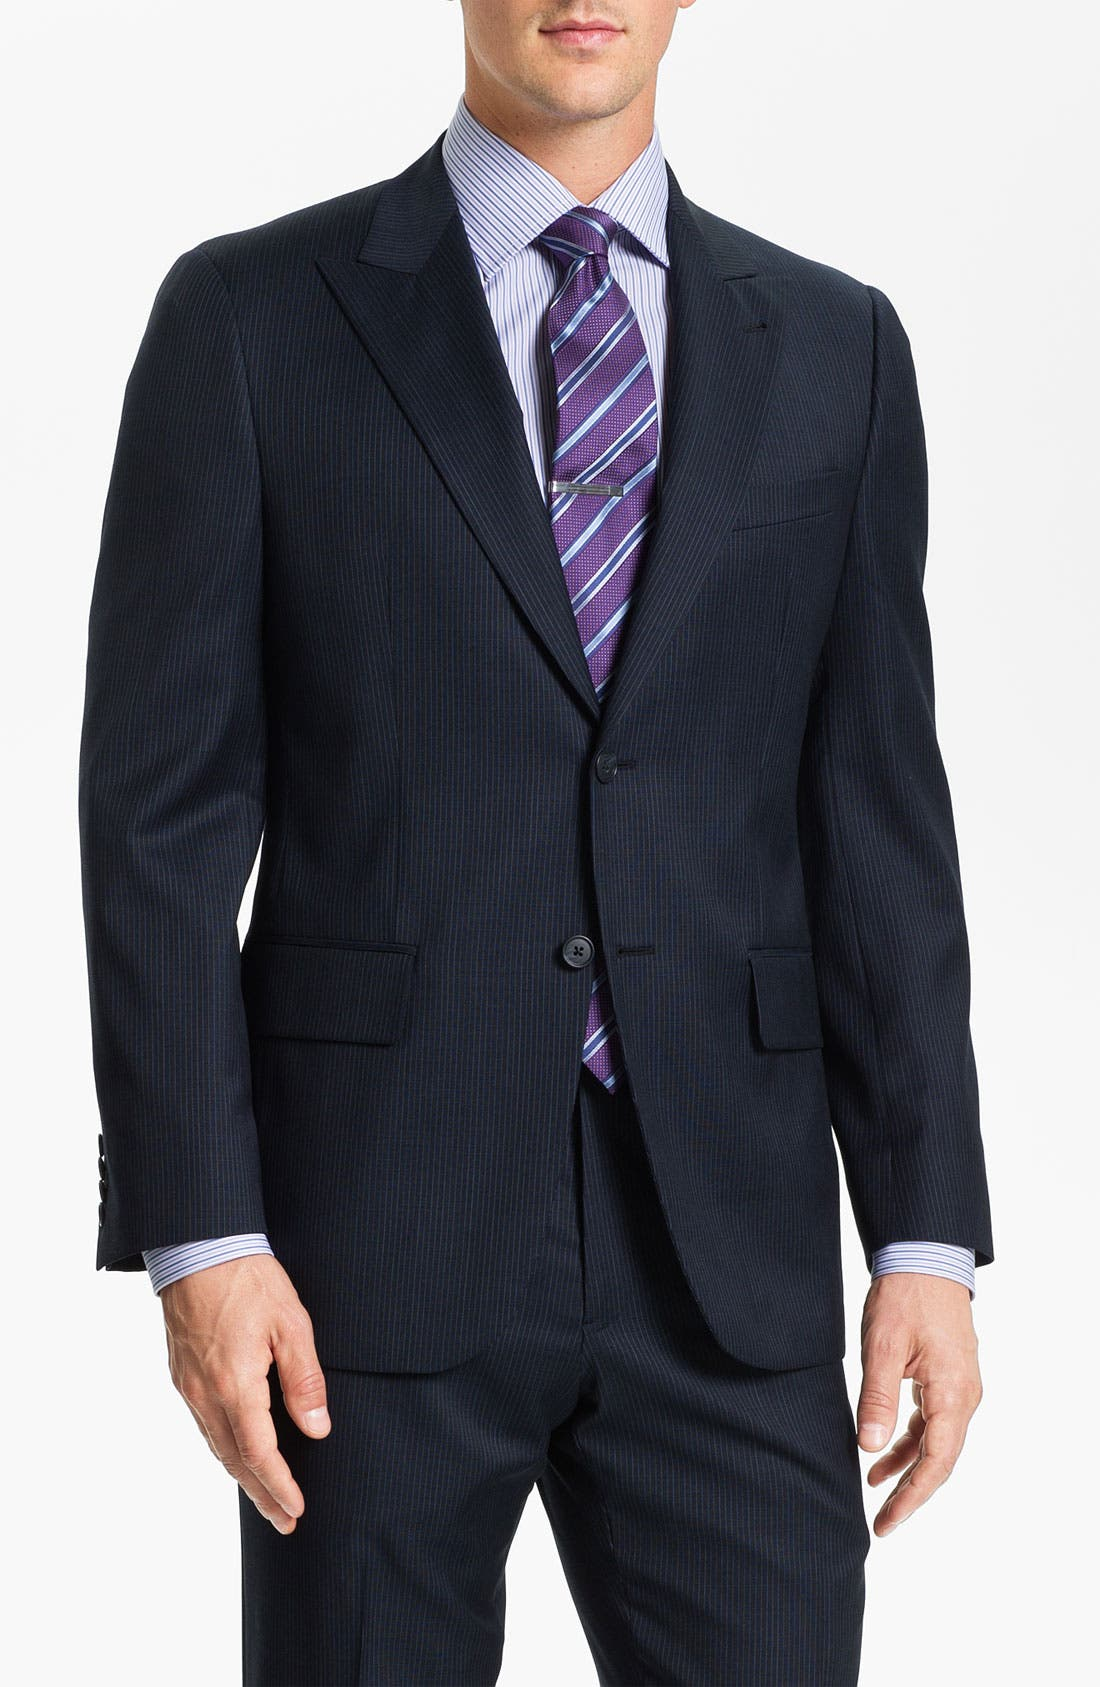 Main Image - Joseph Abboud Trim Fit Peak Lapel Stripe Suit